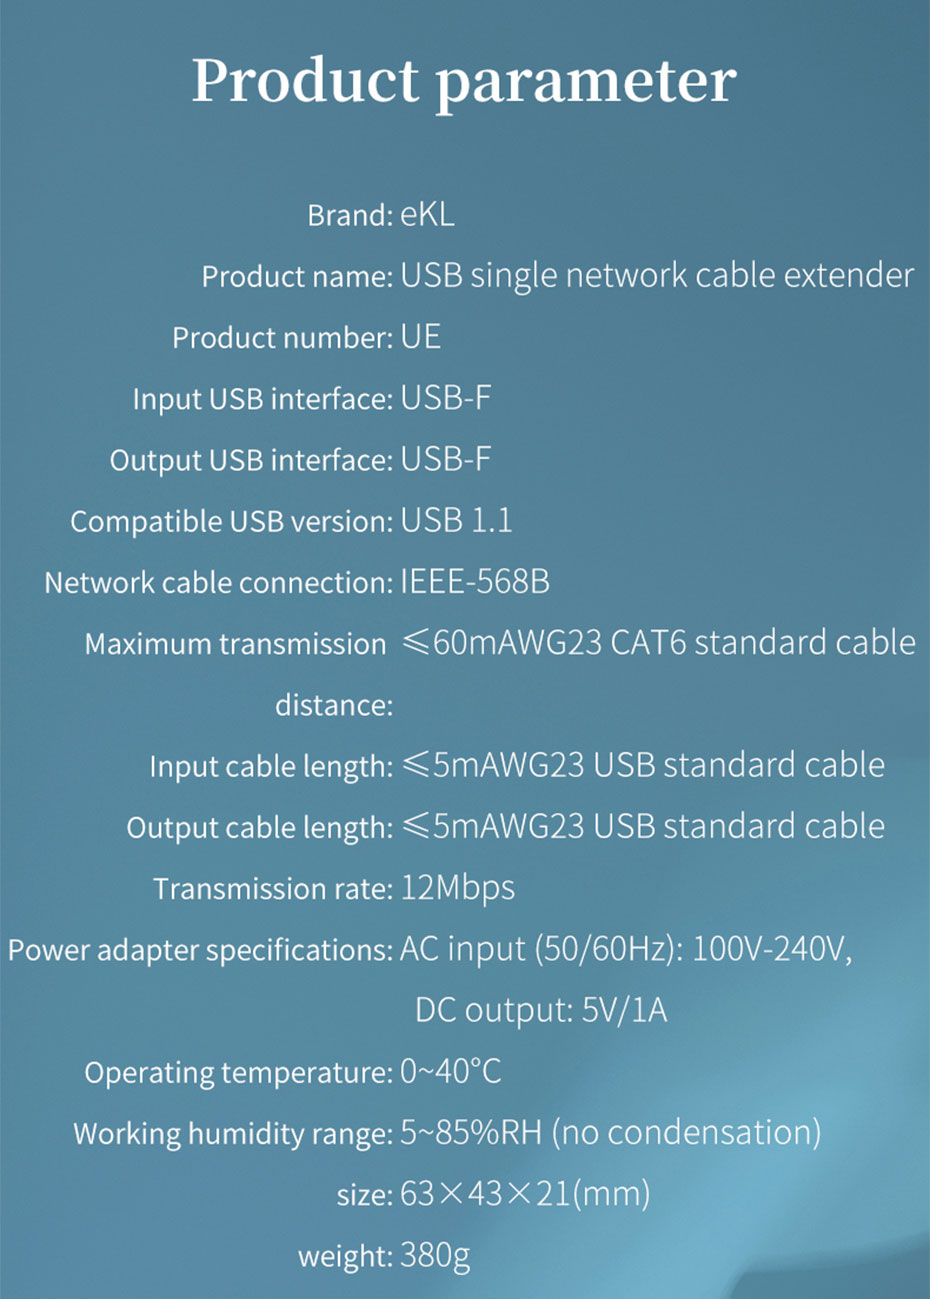 USB mouse keyboard extender UE specifications